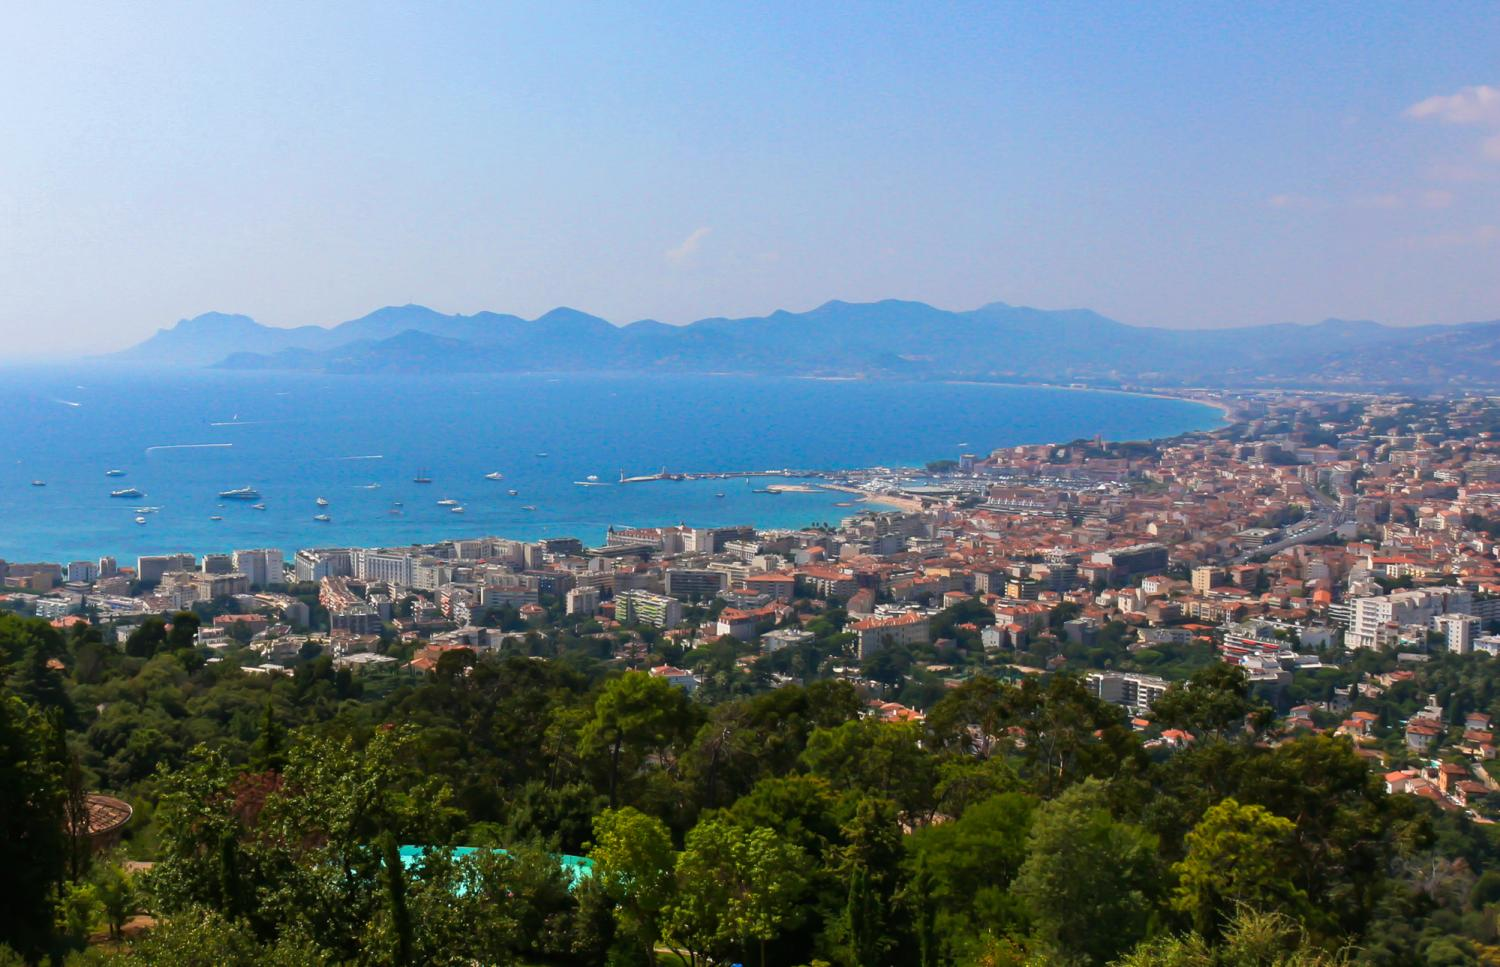 Cannes Sea Views, La Contemporaine, Cannes, Cote d'Azur.